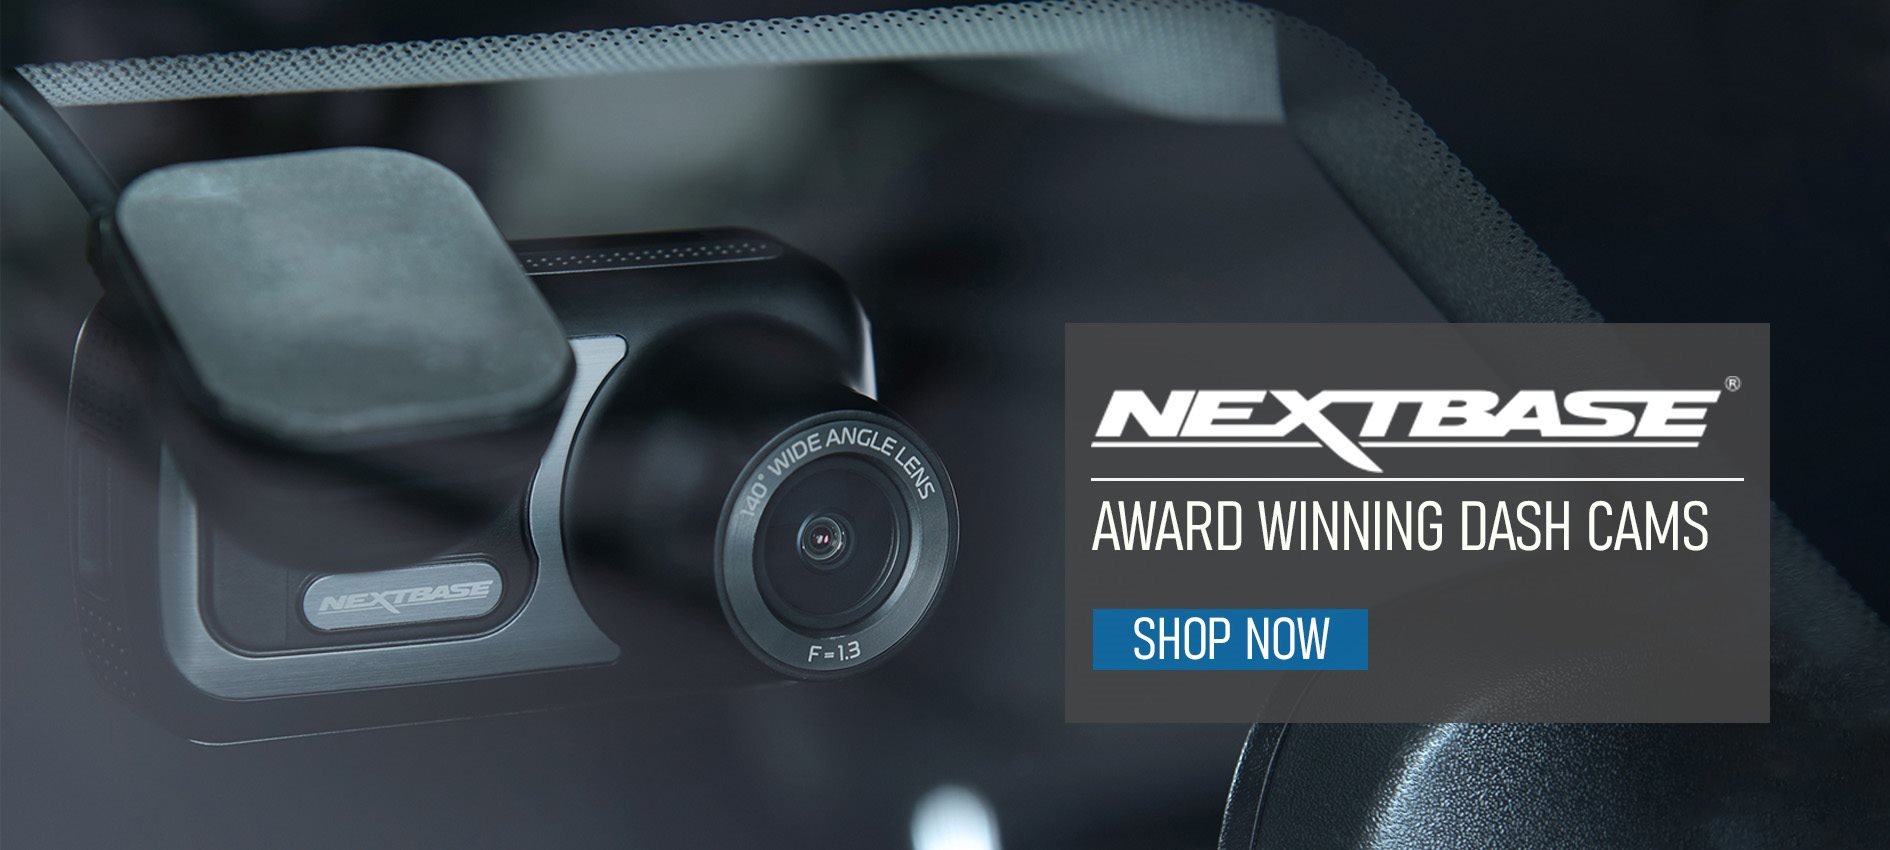 NextBase Award Winning Dash Cams